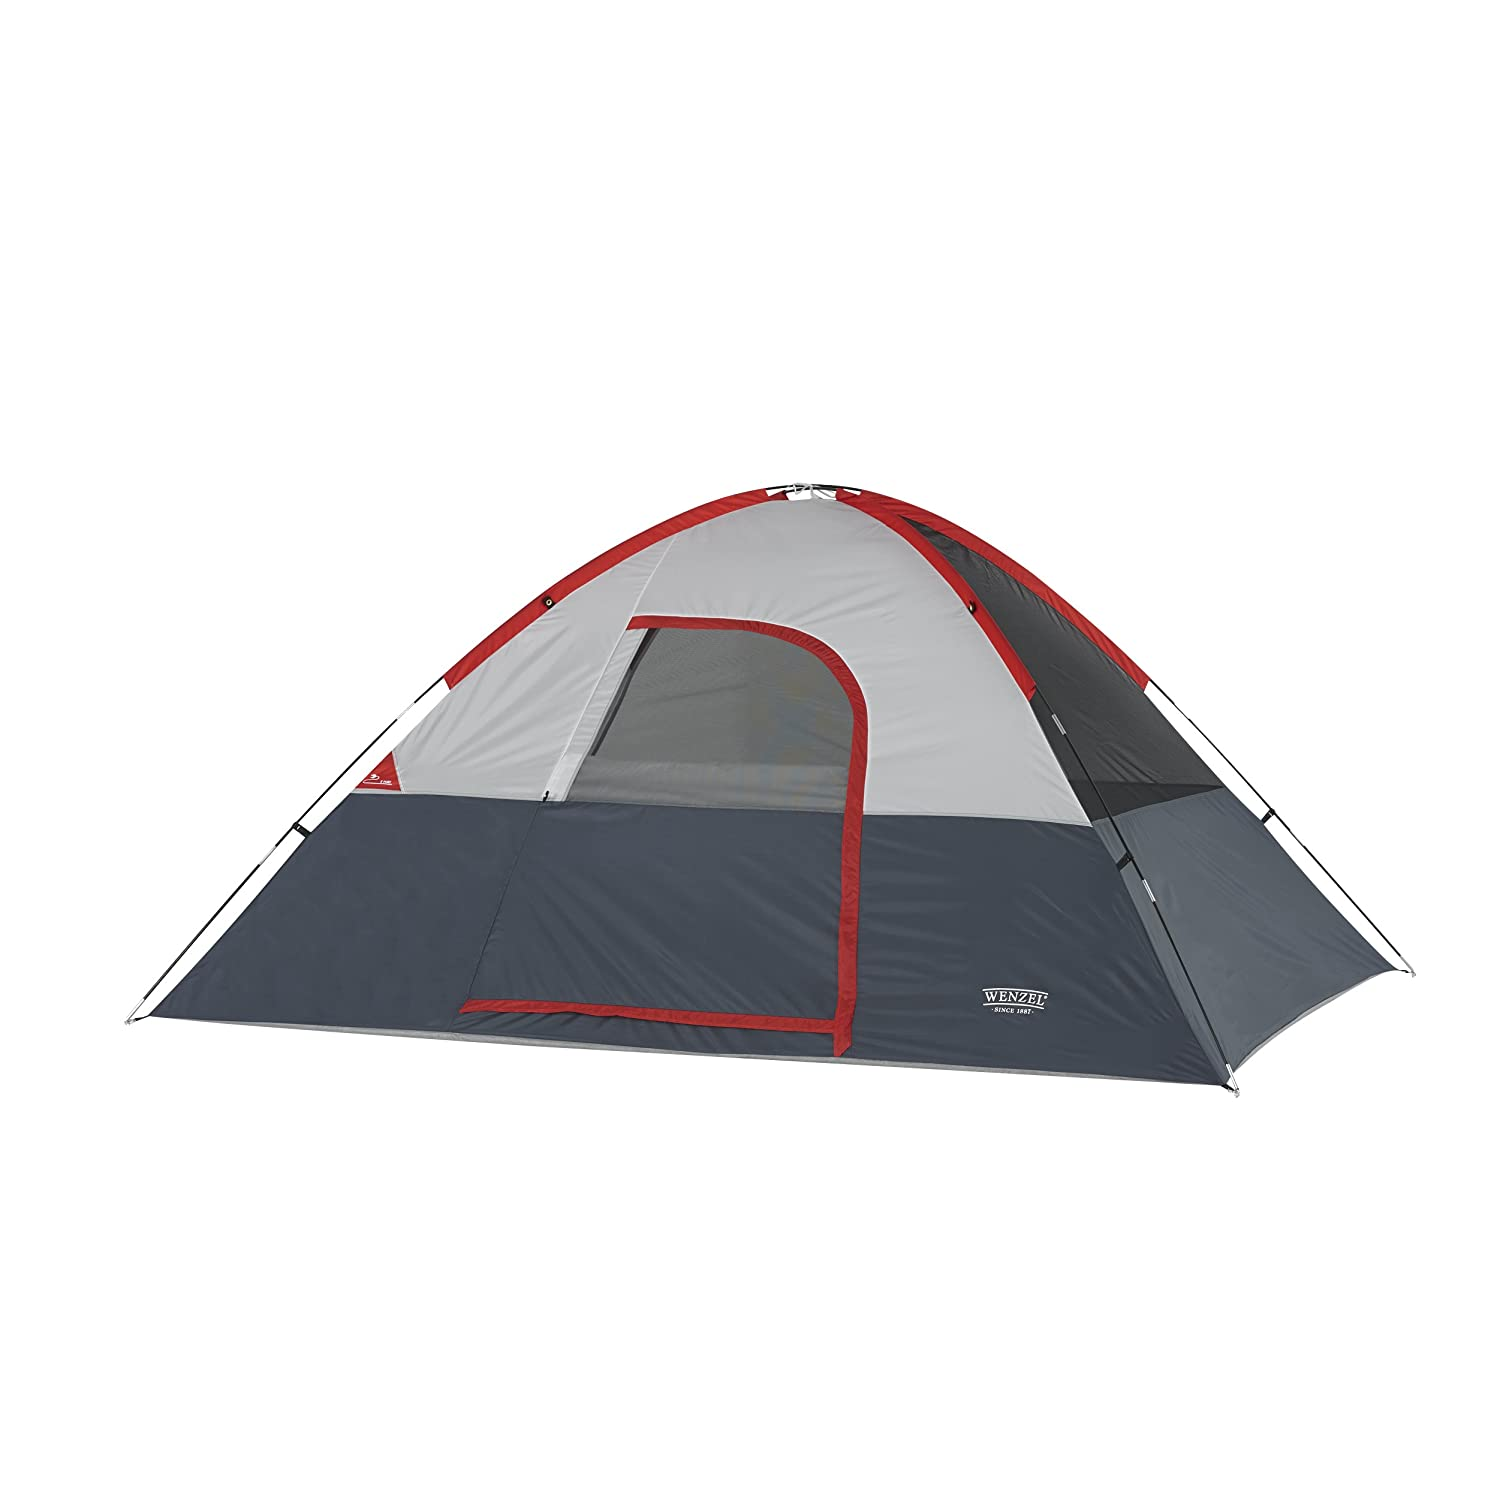 sc 1 st  Amazon.com & Amazon.com : Wenzel Dome Tent (5 Person) : Sports u0026 Outdoors